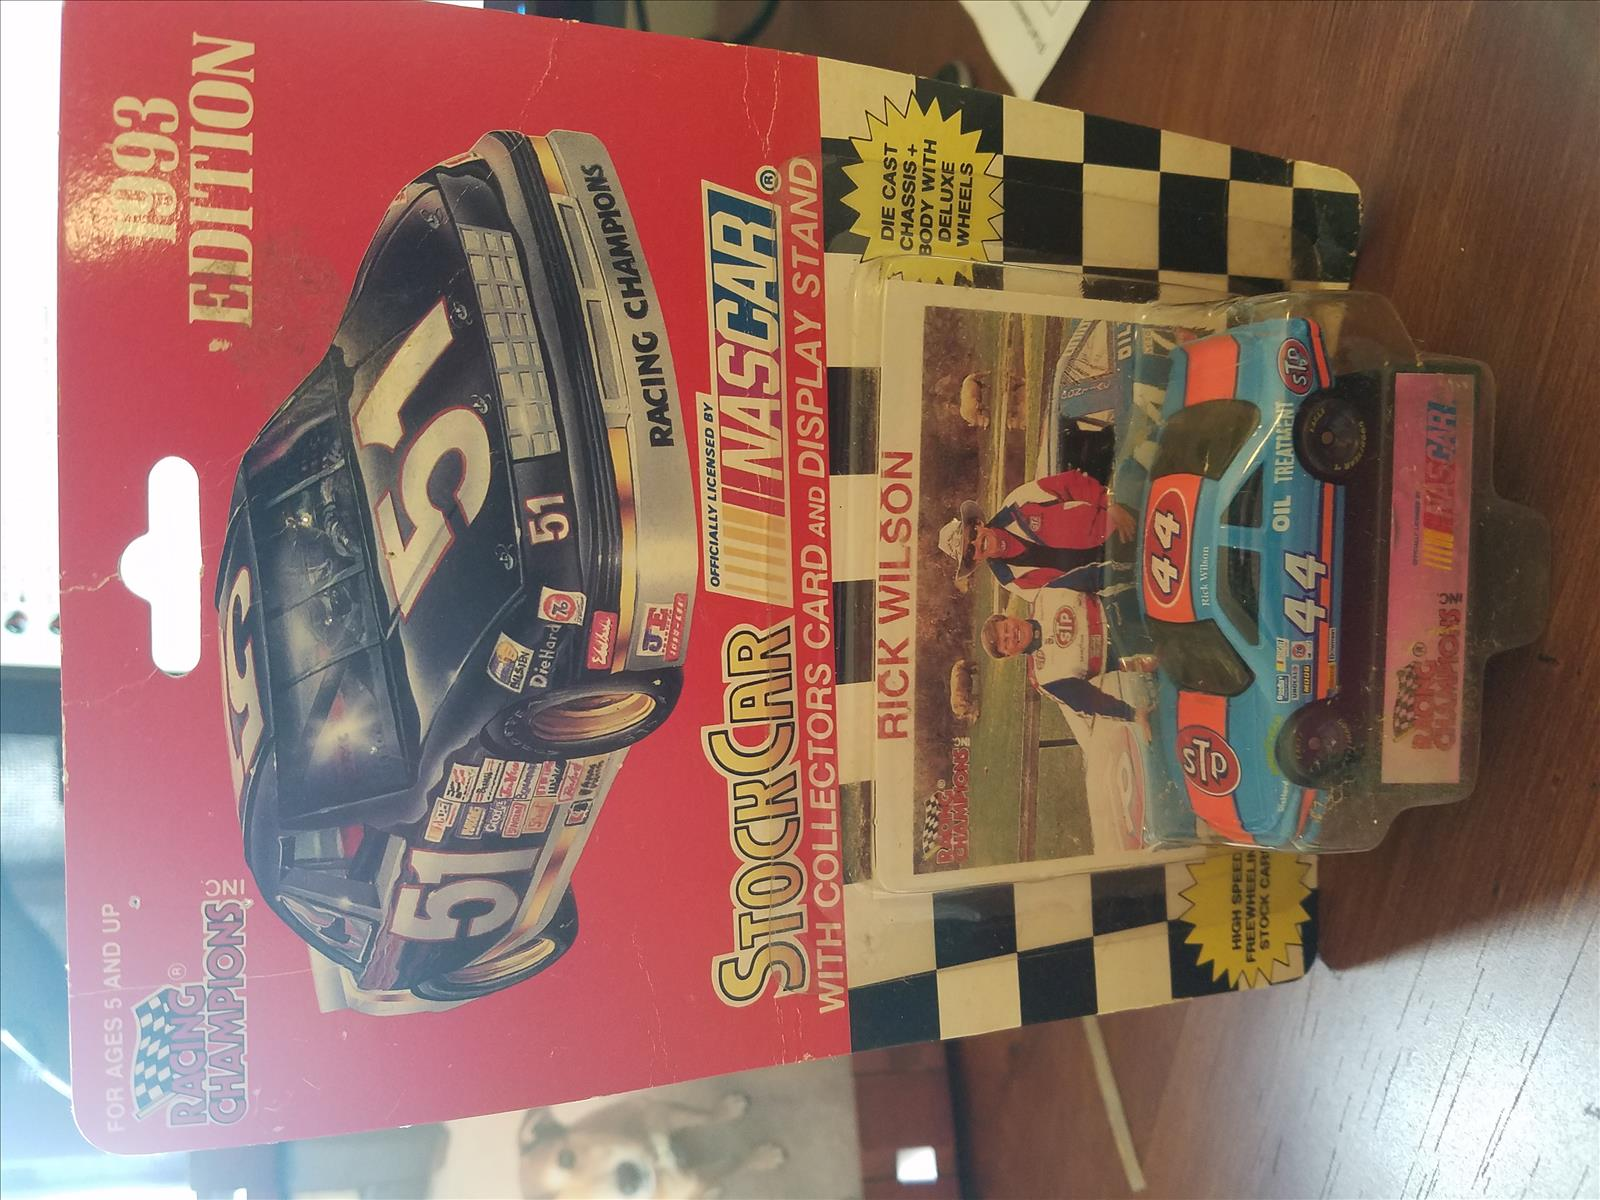 1993 Rick Wilson NASCAR Diecast 44 STP Oil Treatment CWC 64 Racing Champions 1993 Edition 1